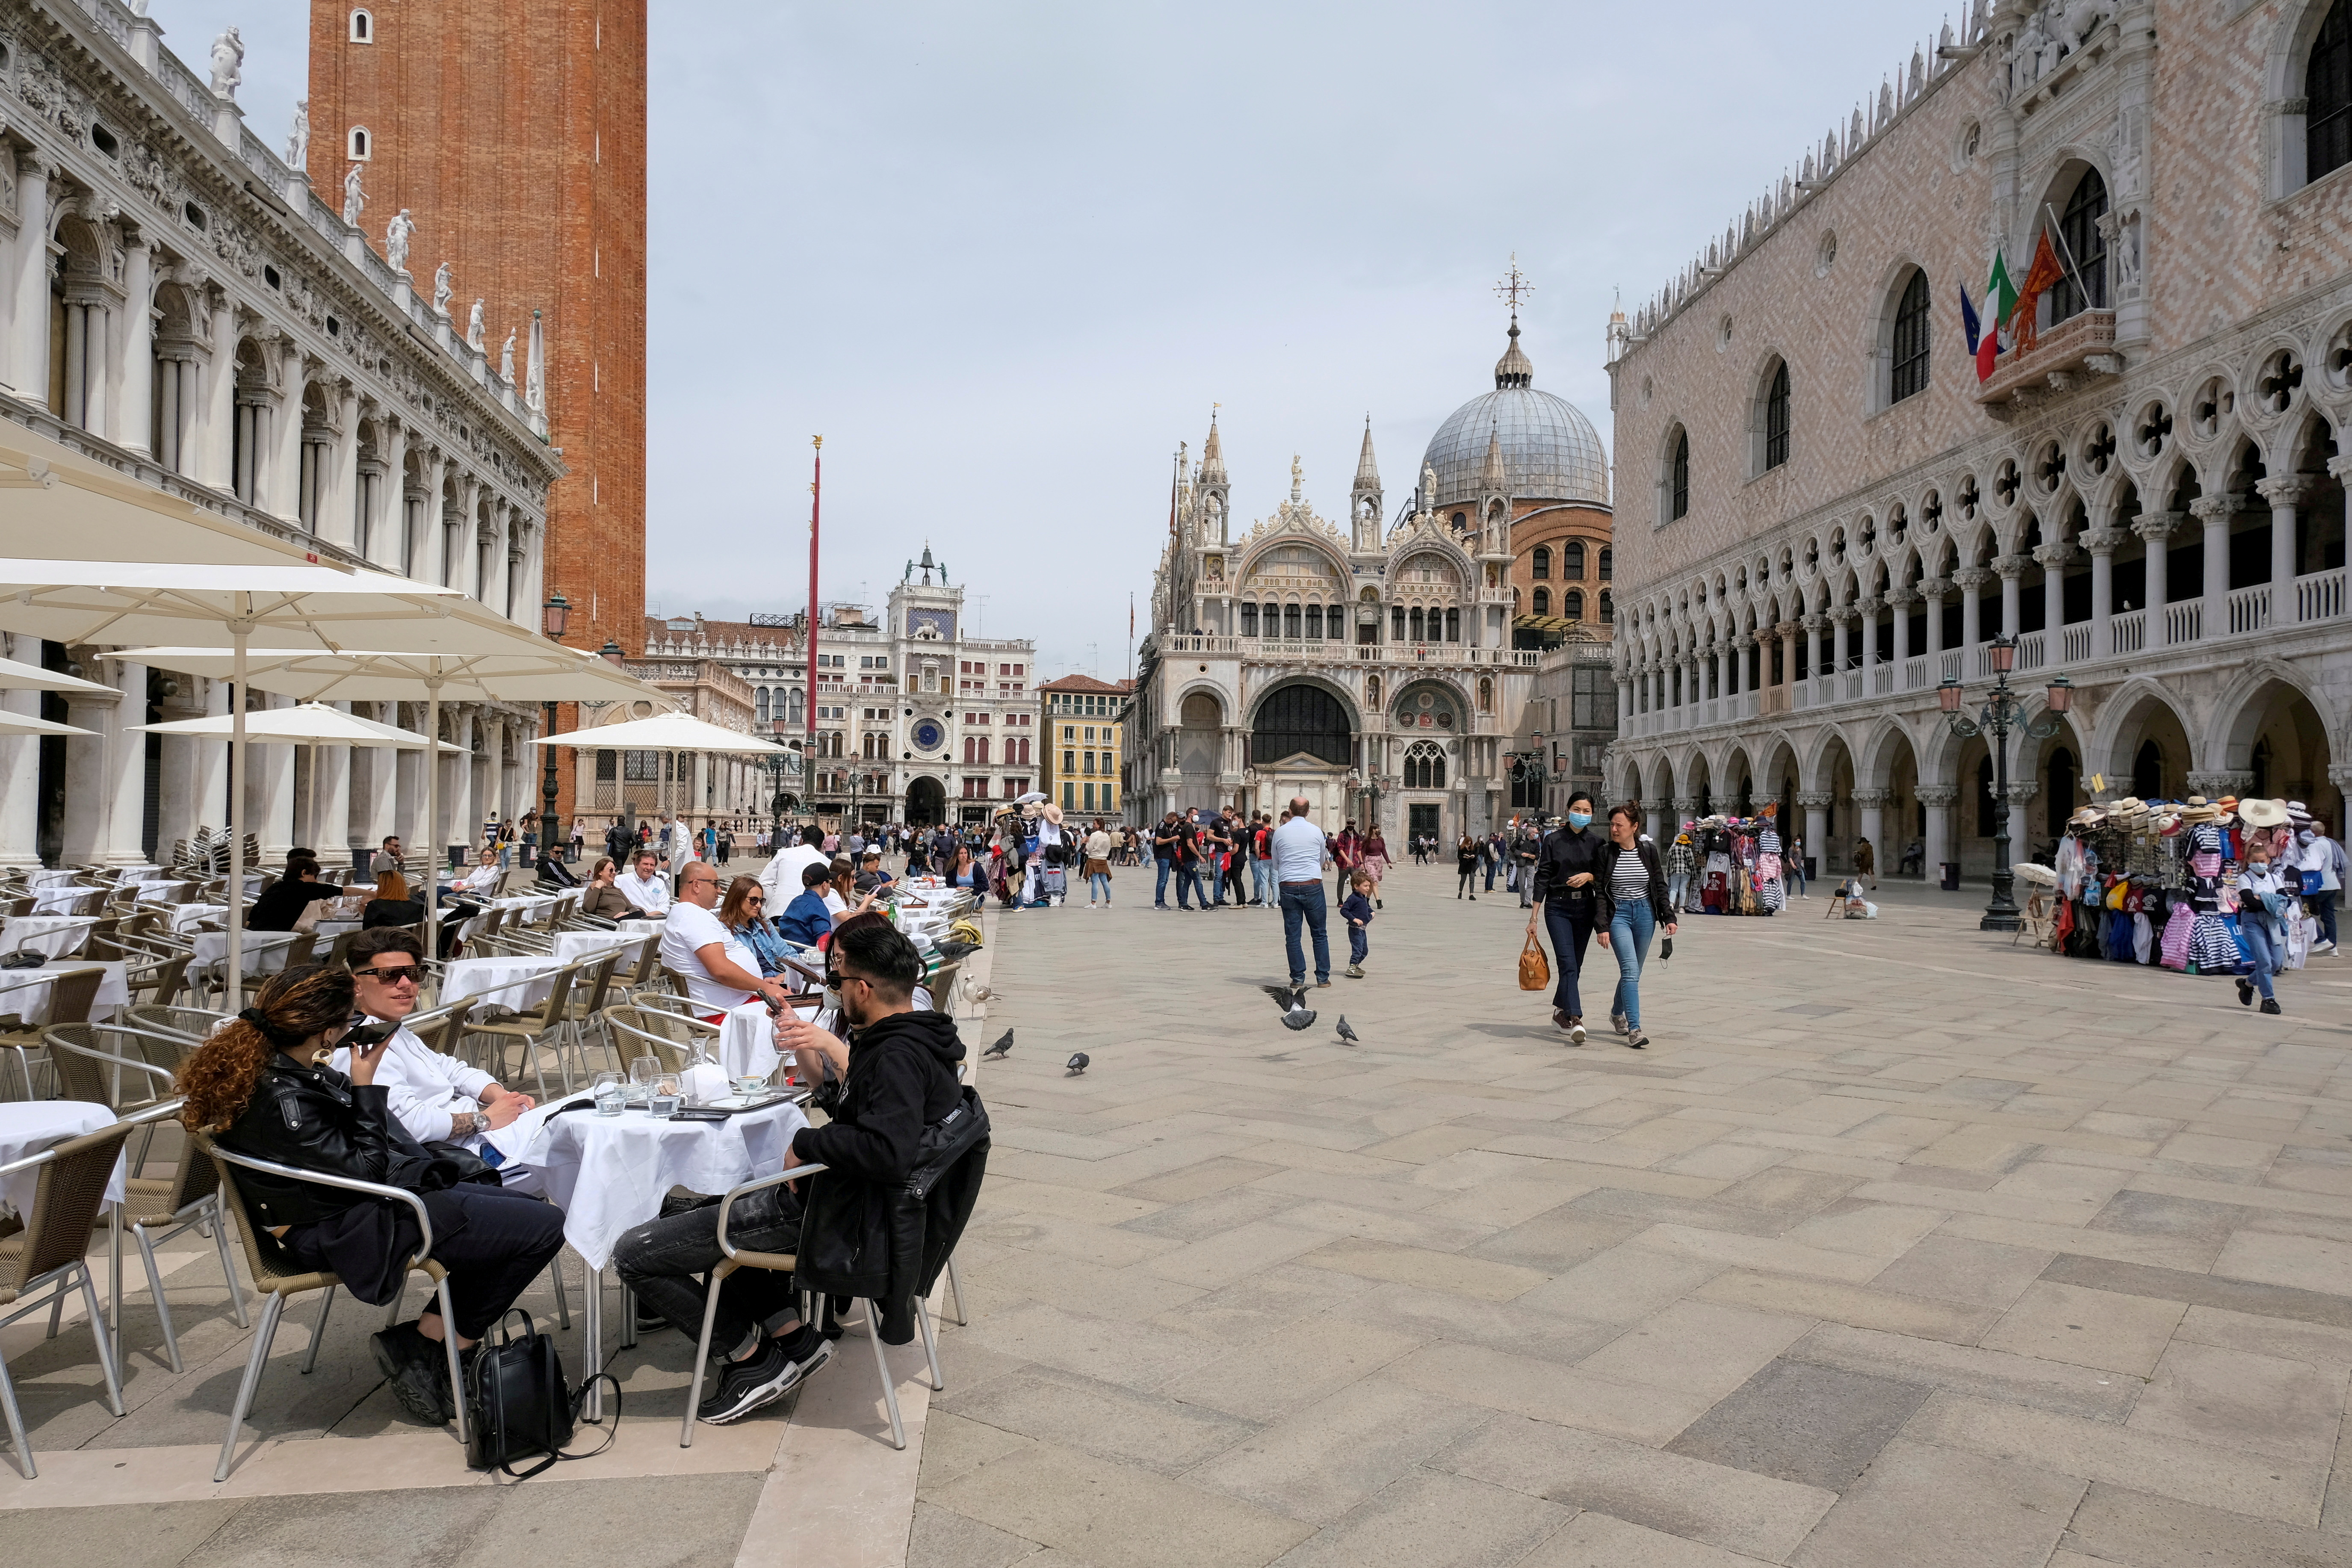 People sit at outdoor tables in St. Mark's Square, Venice, Italy, May 16, 2021. REUTERS/Manuel Silvestri